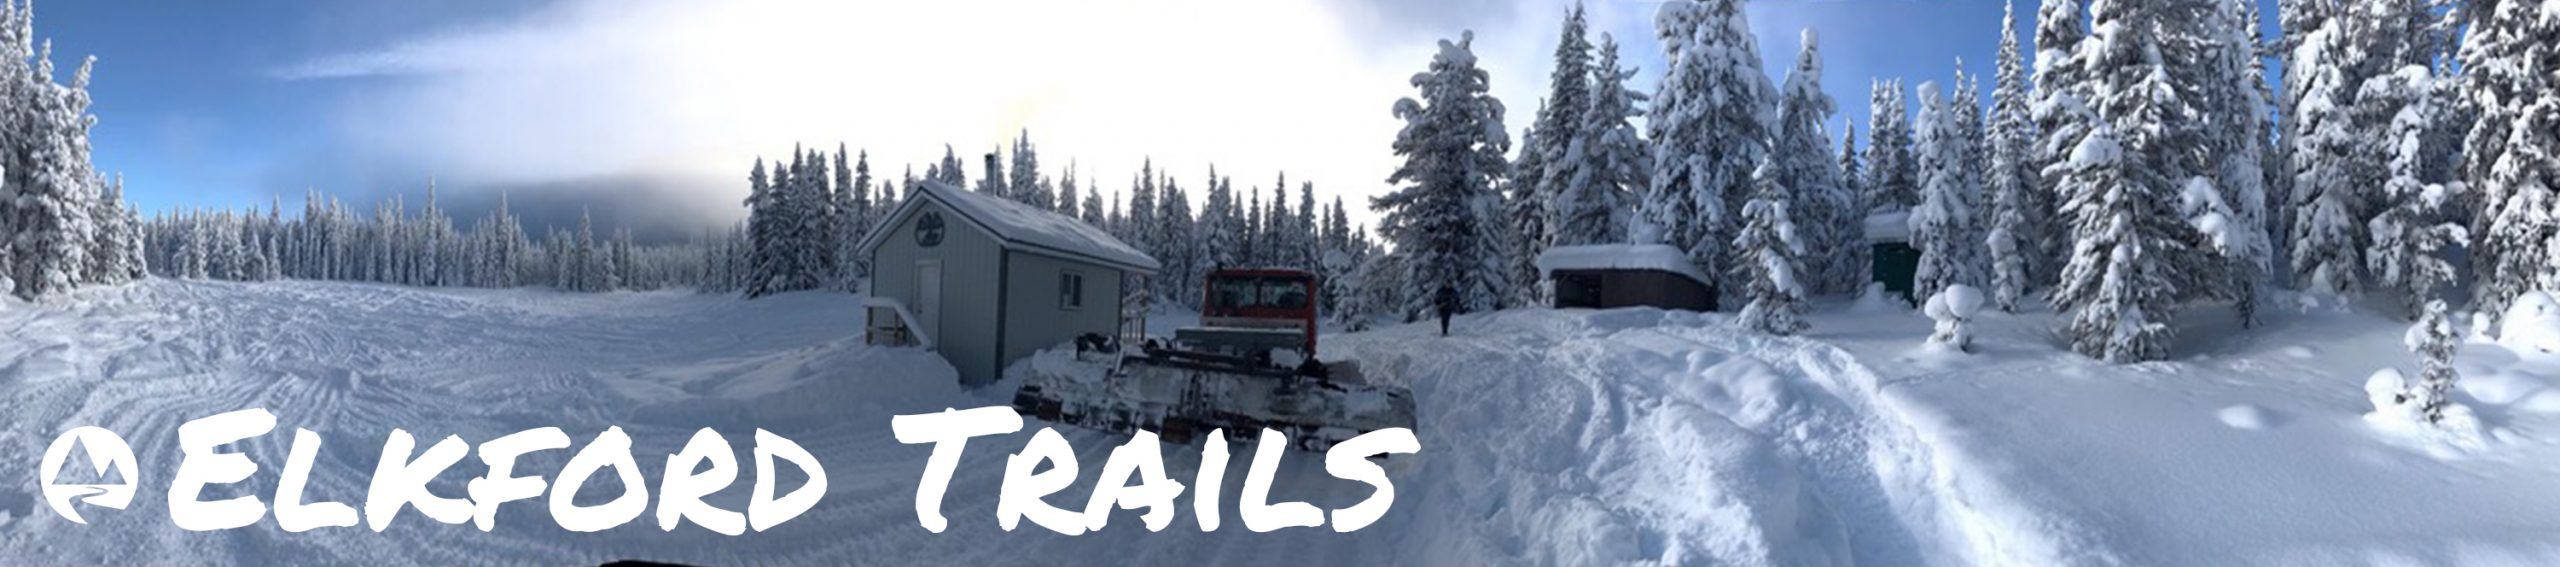 Elkford Trails header image